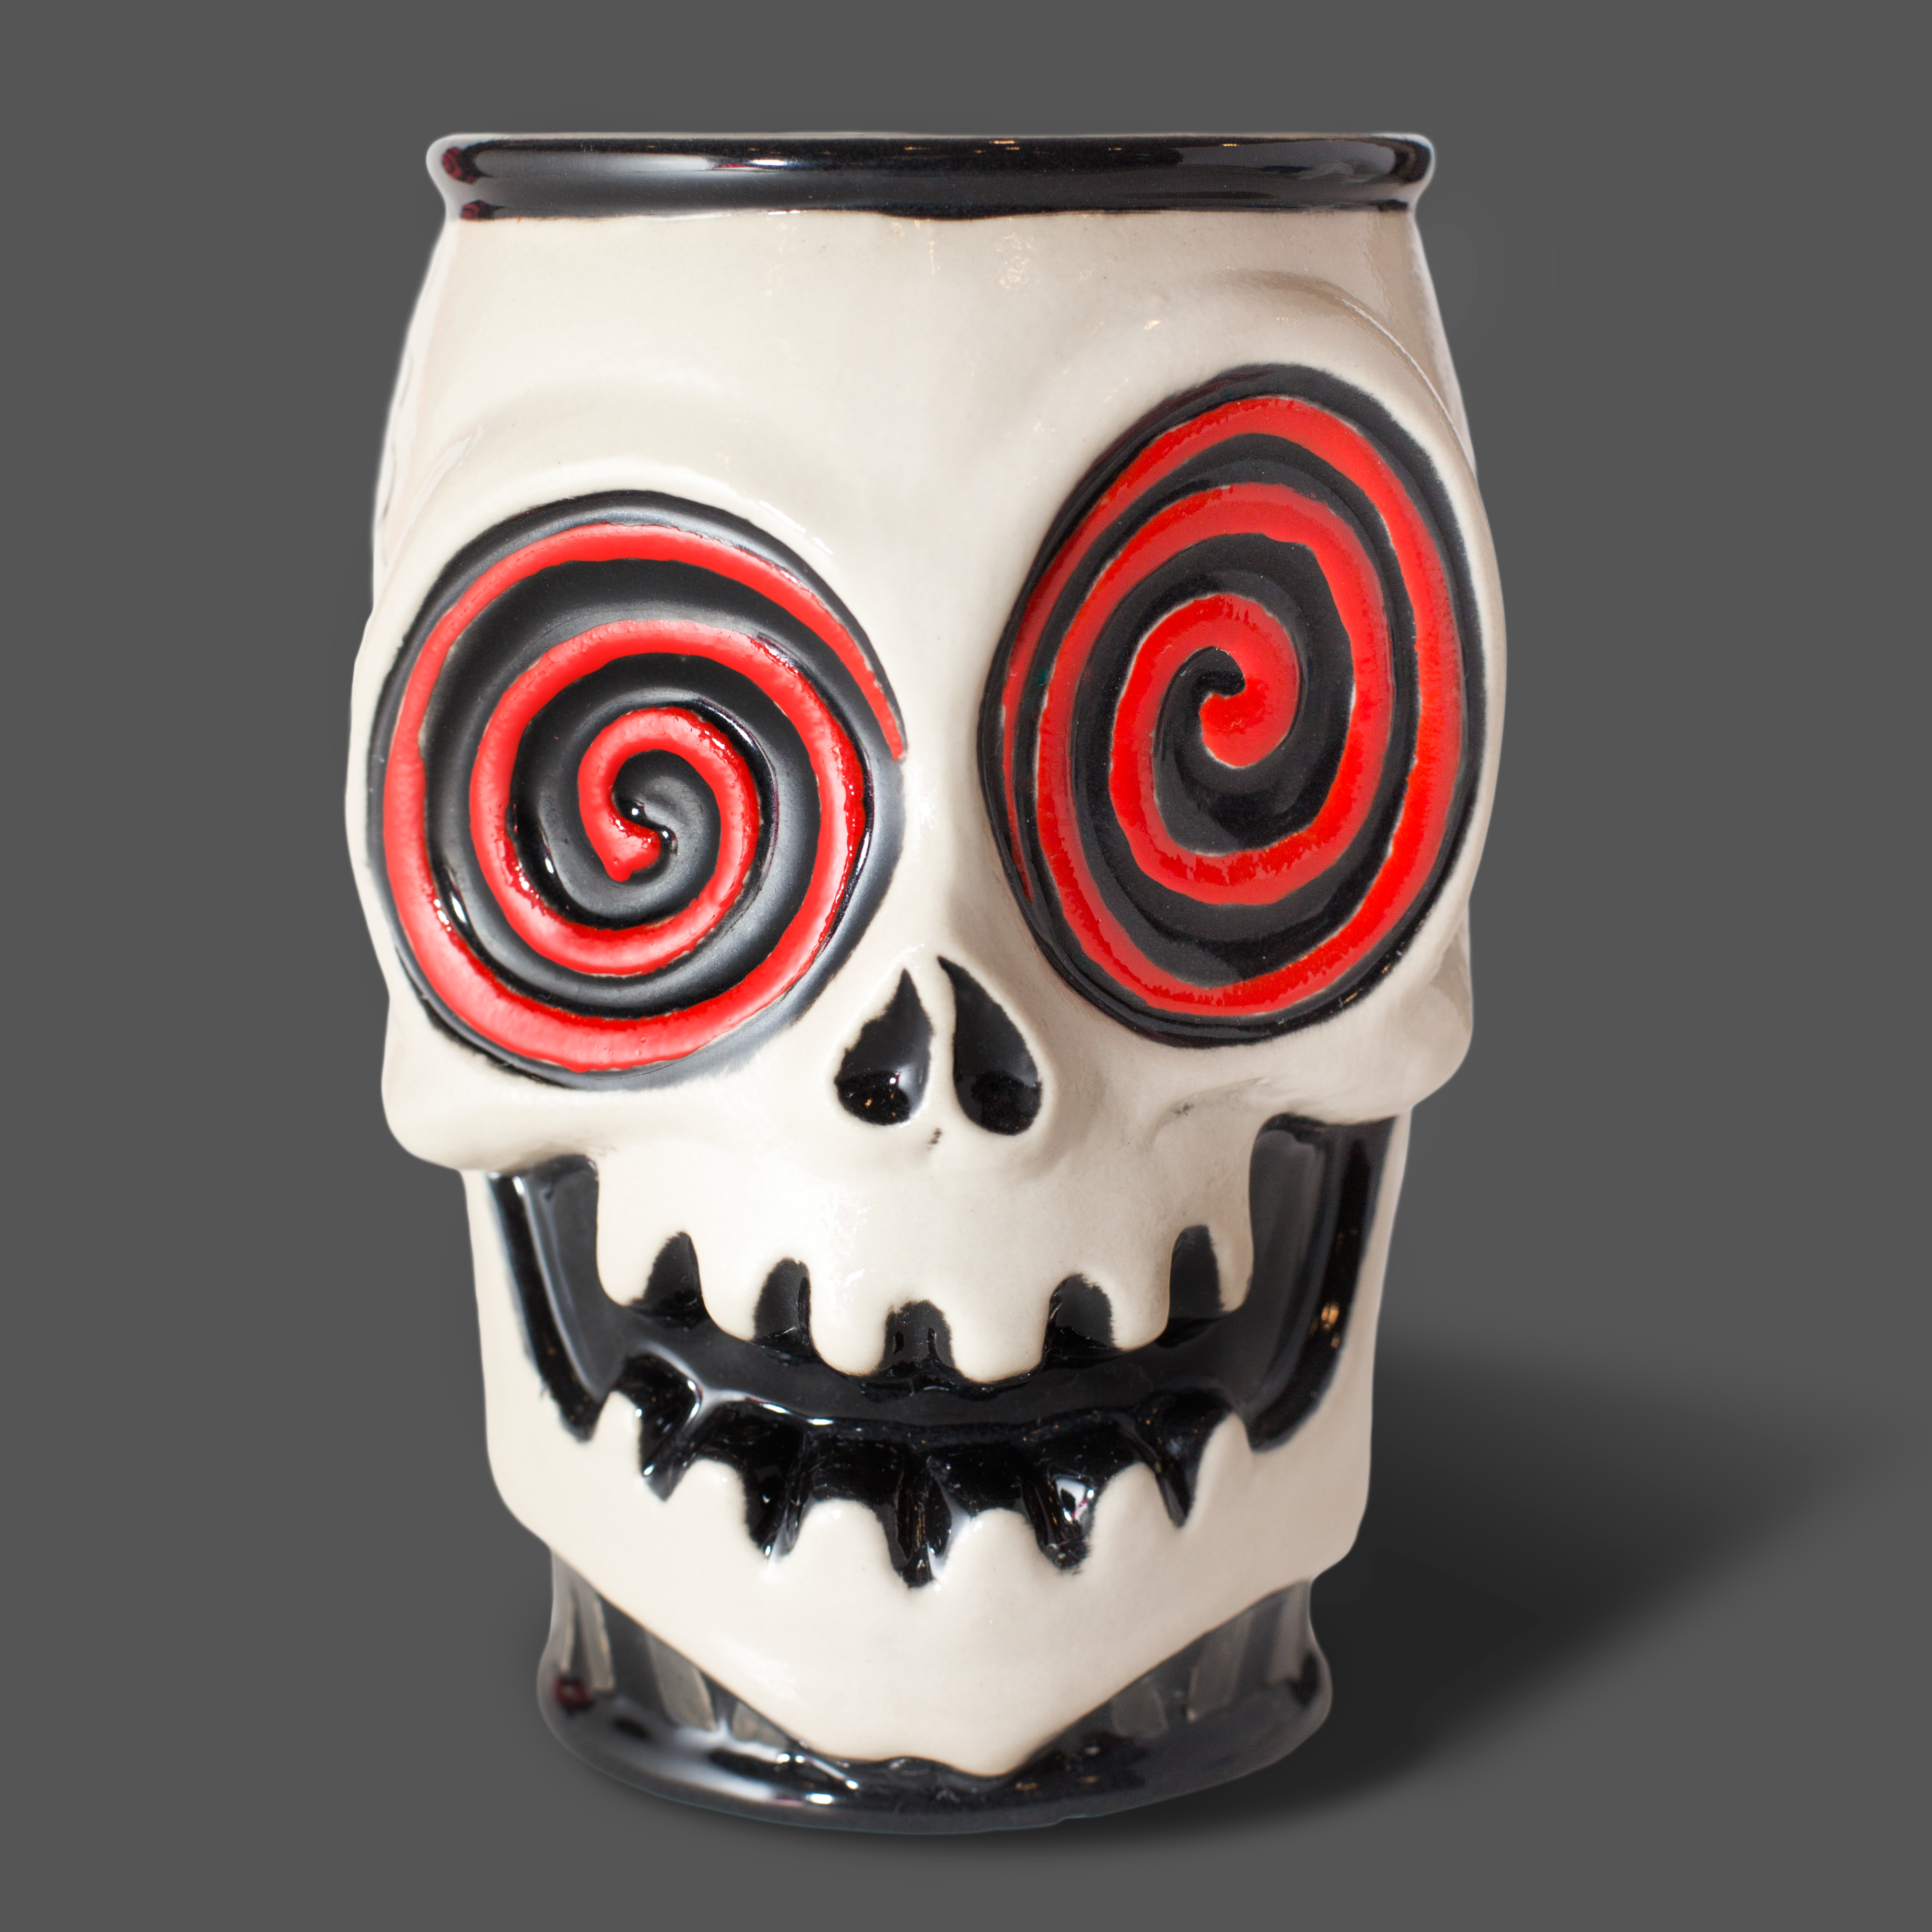 The Vortex Hip Mo Tizer Ceramic Tiki Mug The Vortex